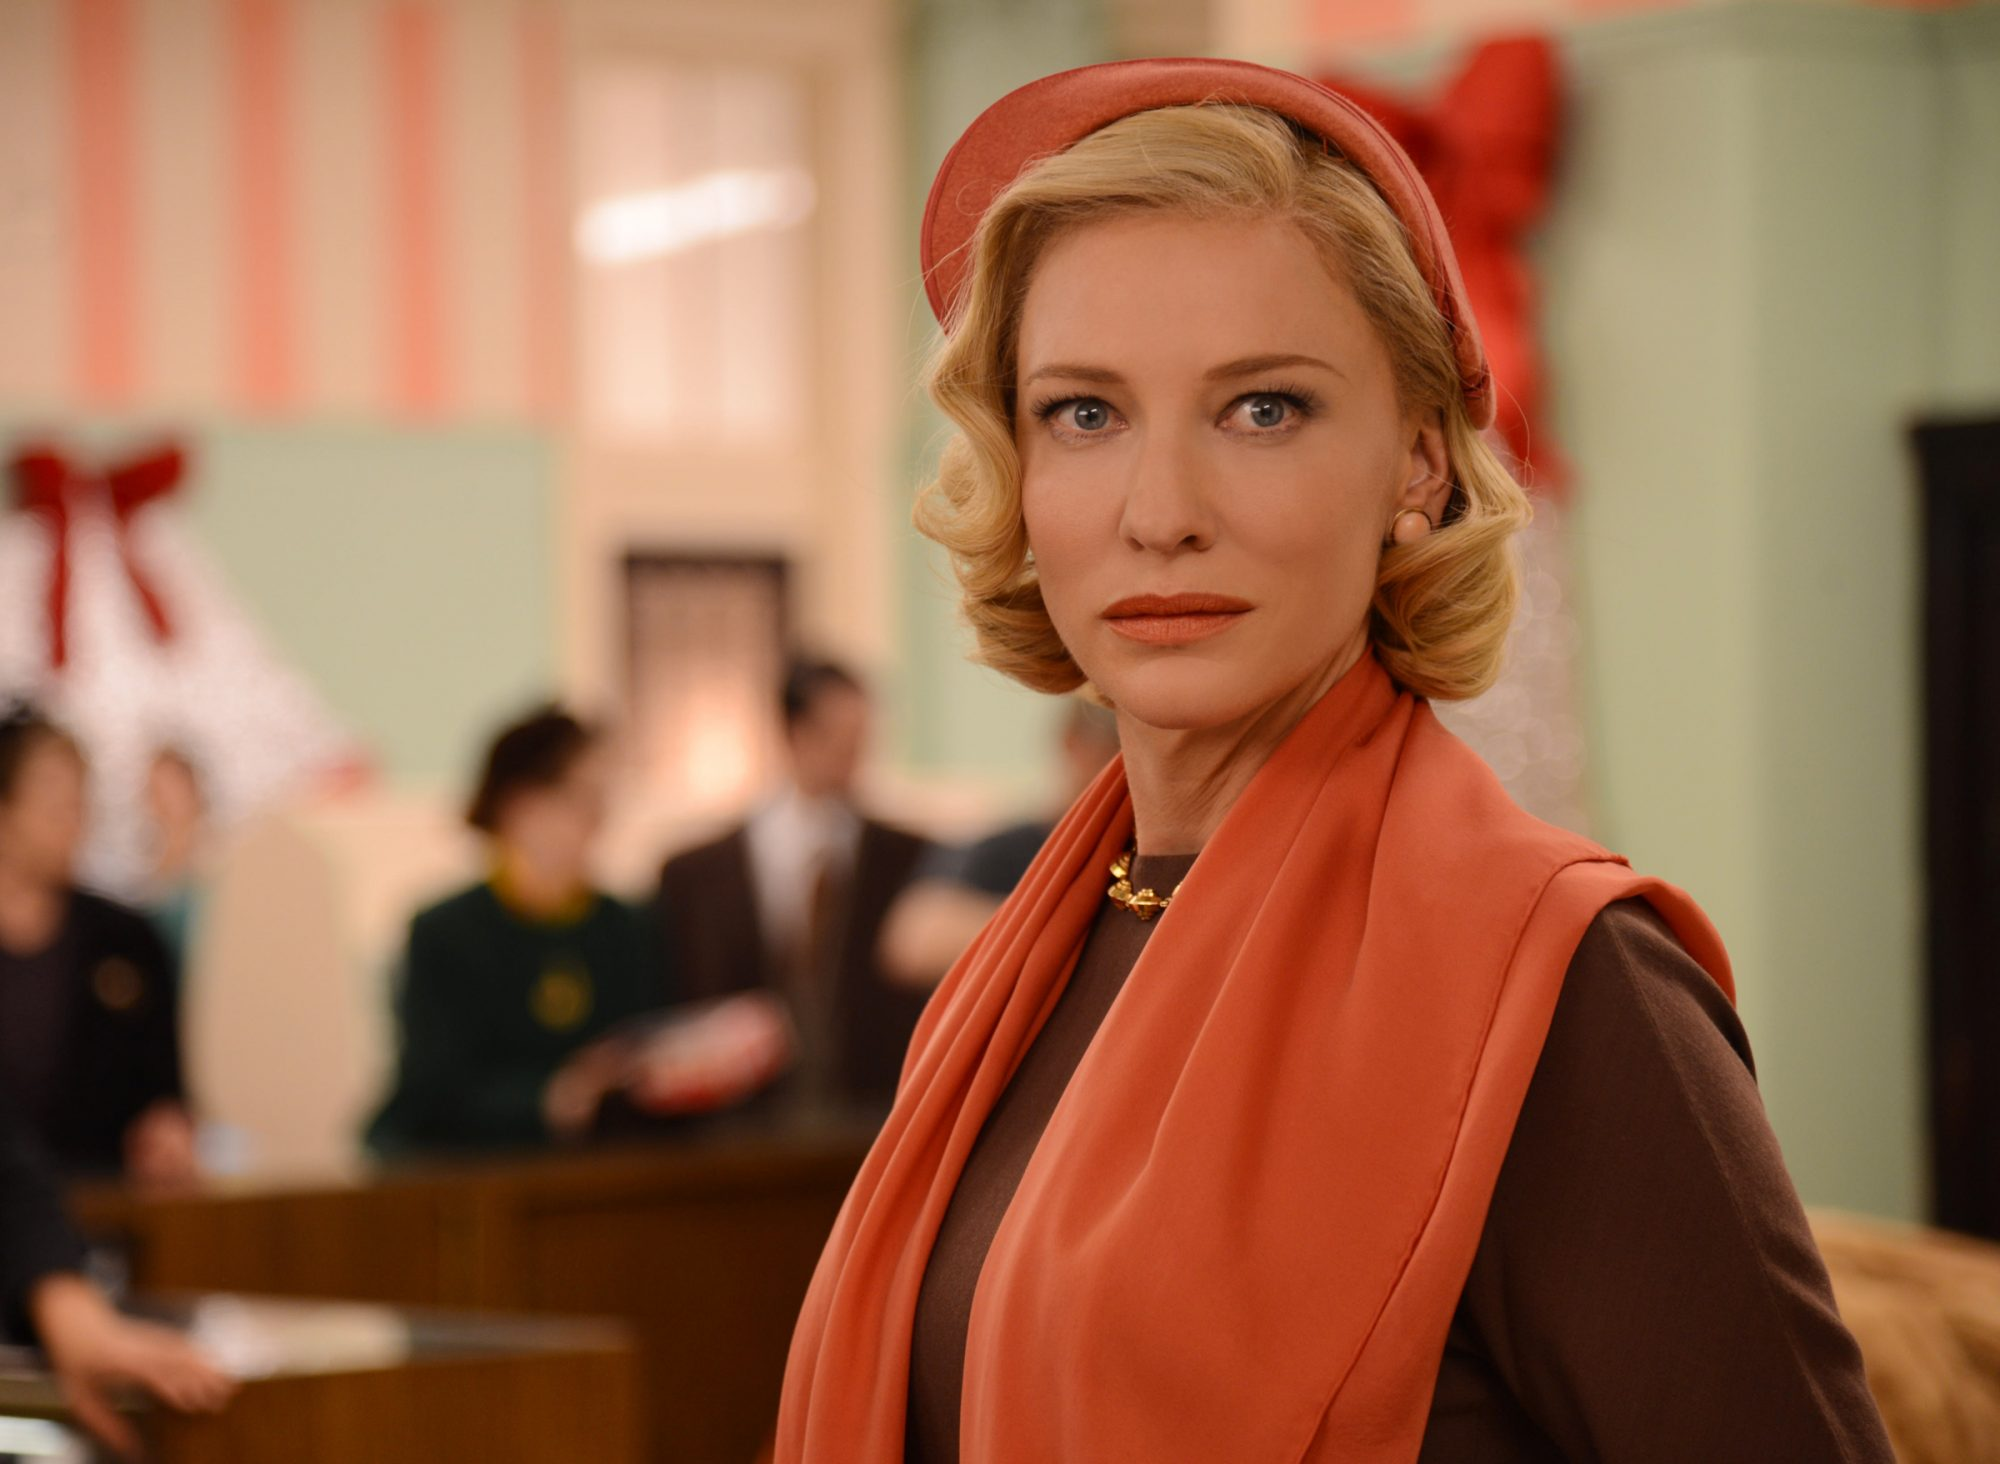 You'll see more scarves on Carol than hats.